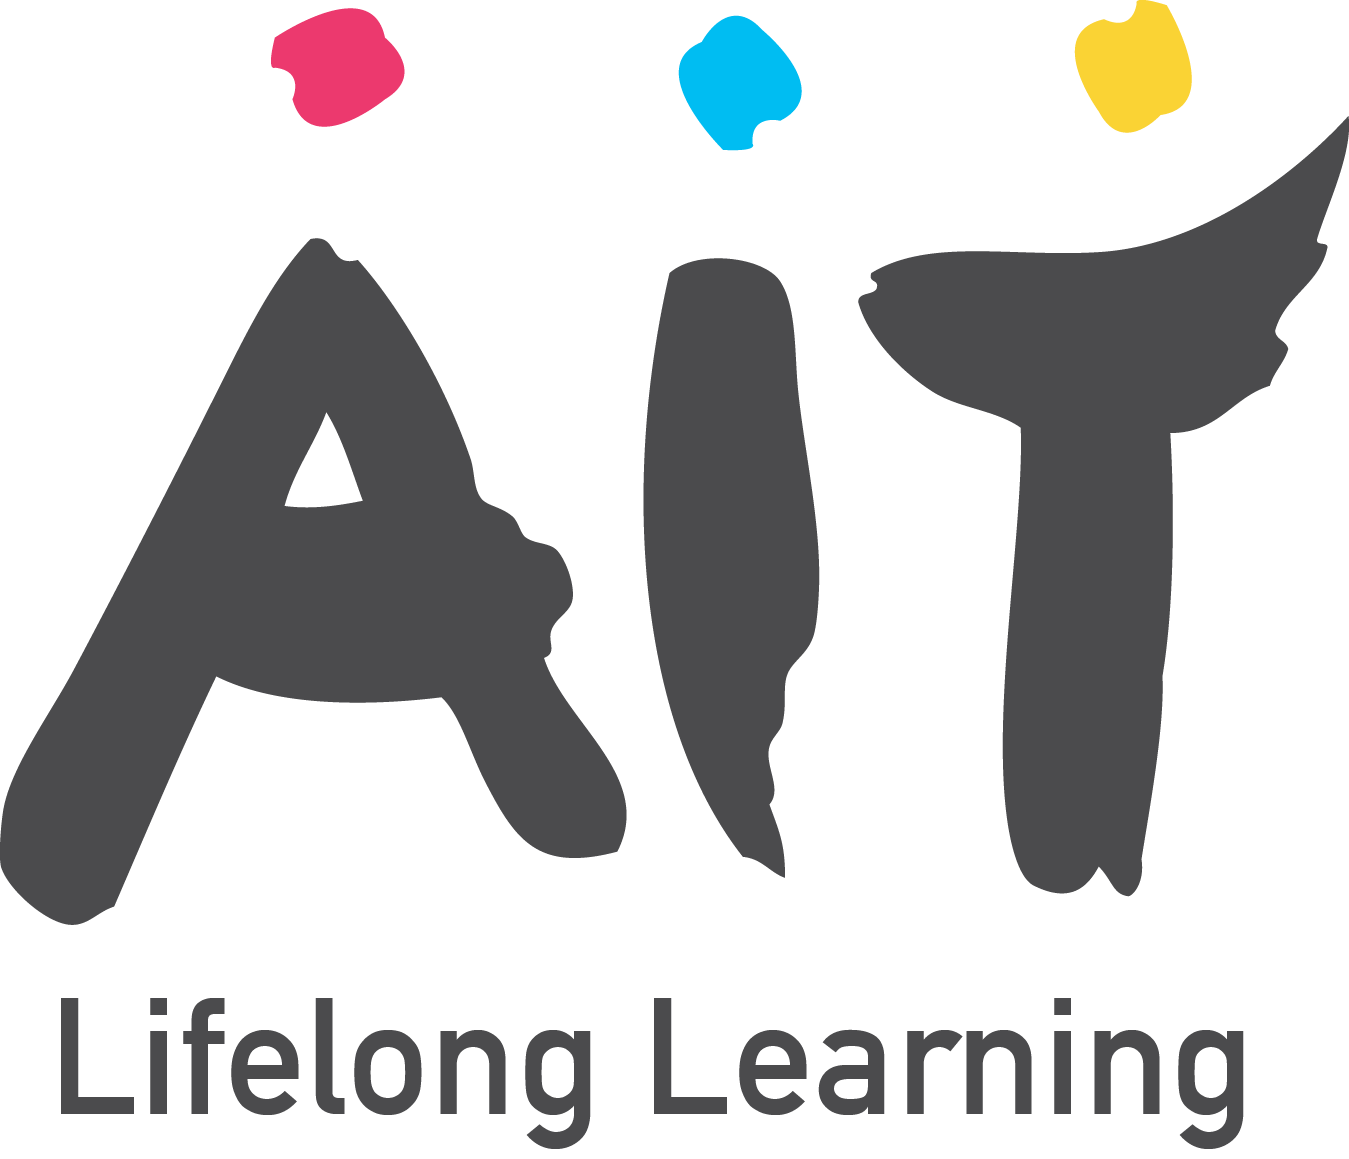 Find flexible and lifelong learning with Athlone Institute of Technology this Thursday